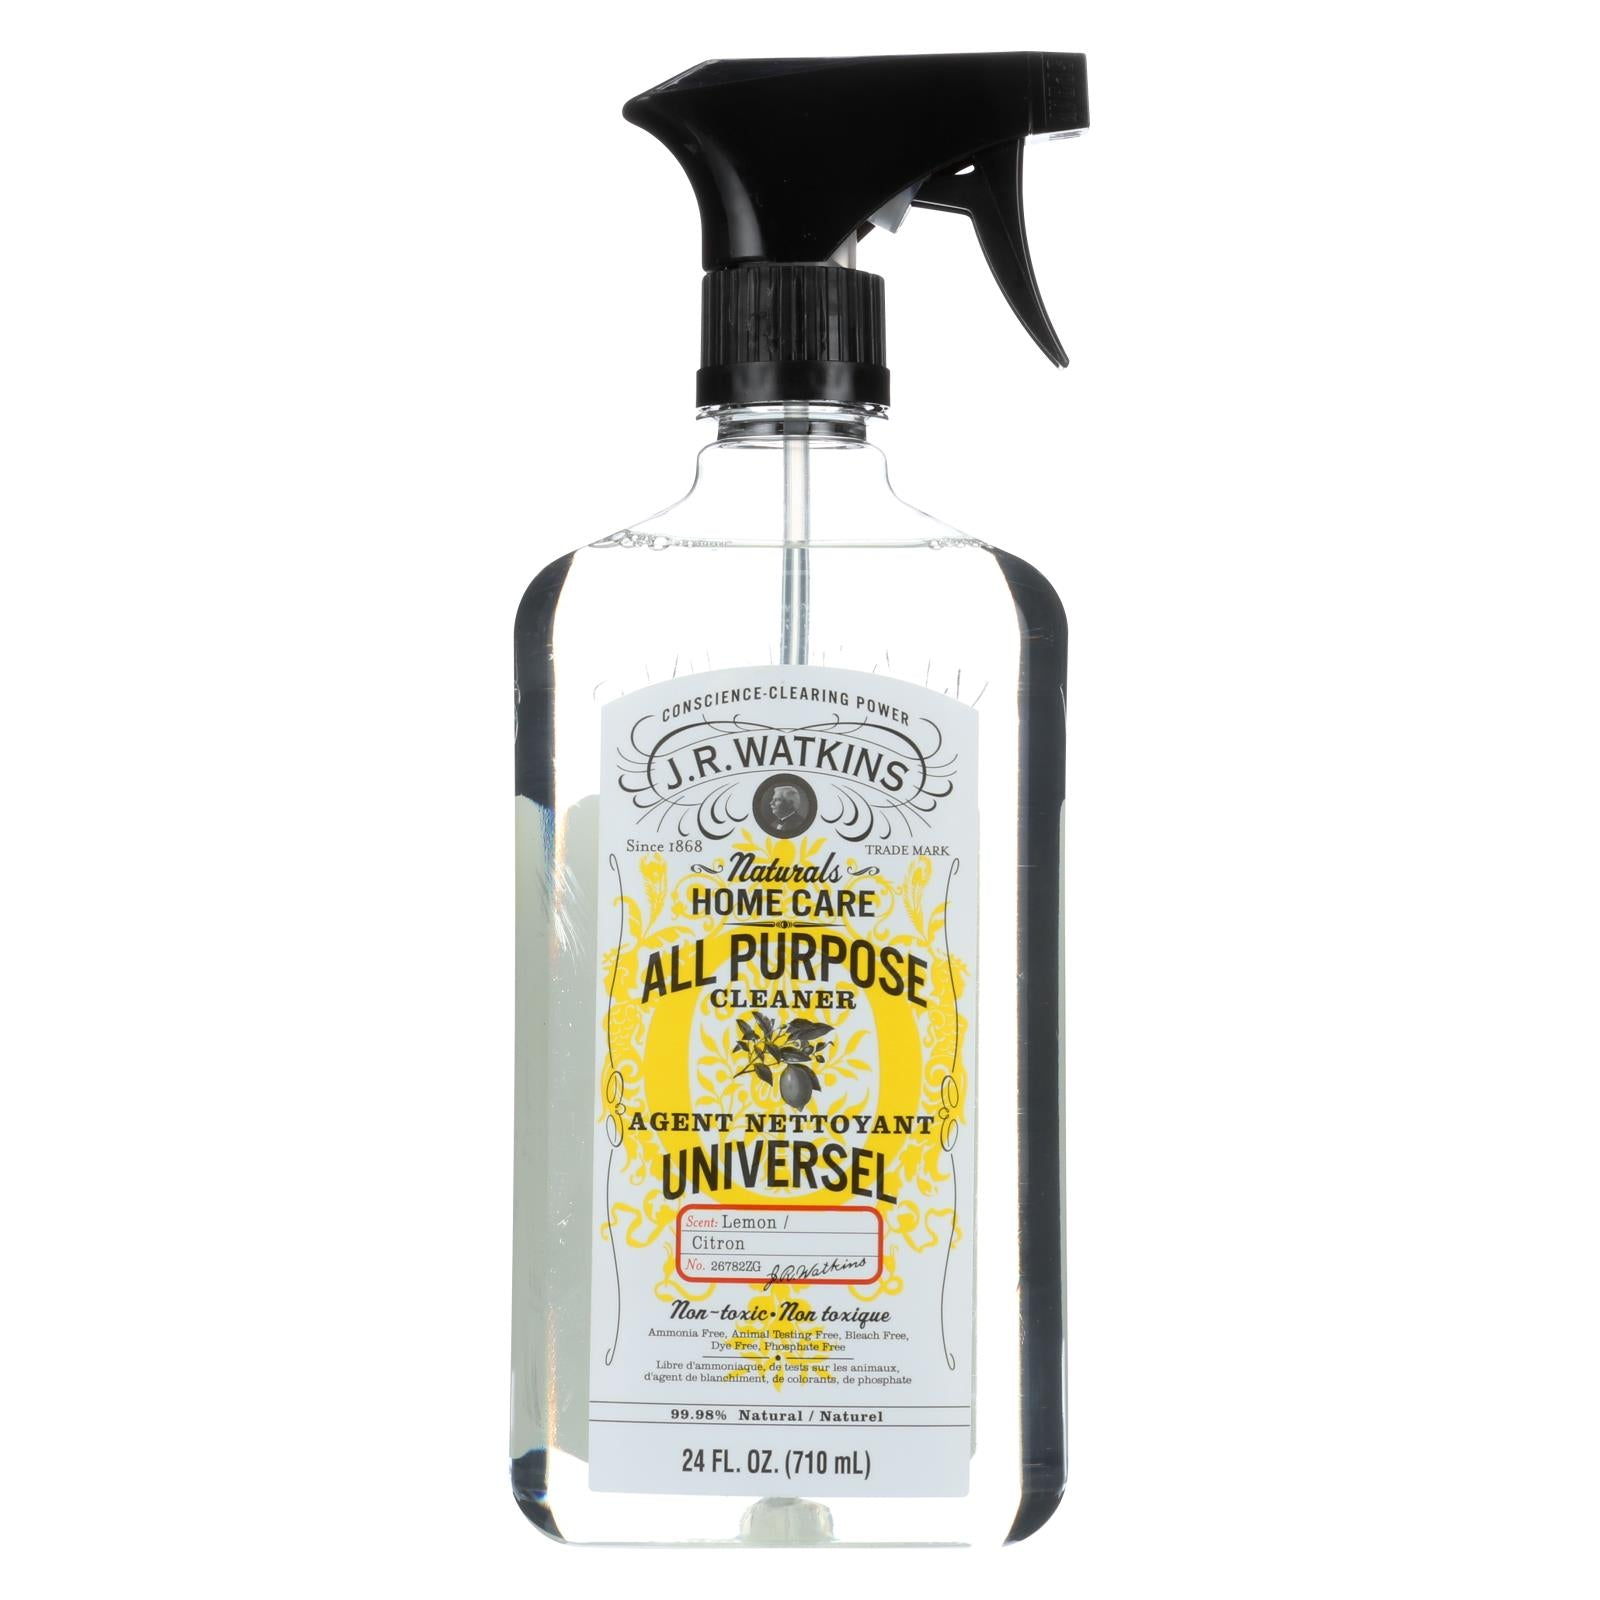 Buy J.R. Watkins Natural All Purpose Cleaner Lemon - 24 fl oz - Household Cleaners from Veroeco.com